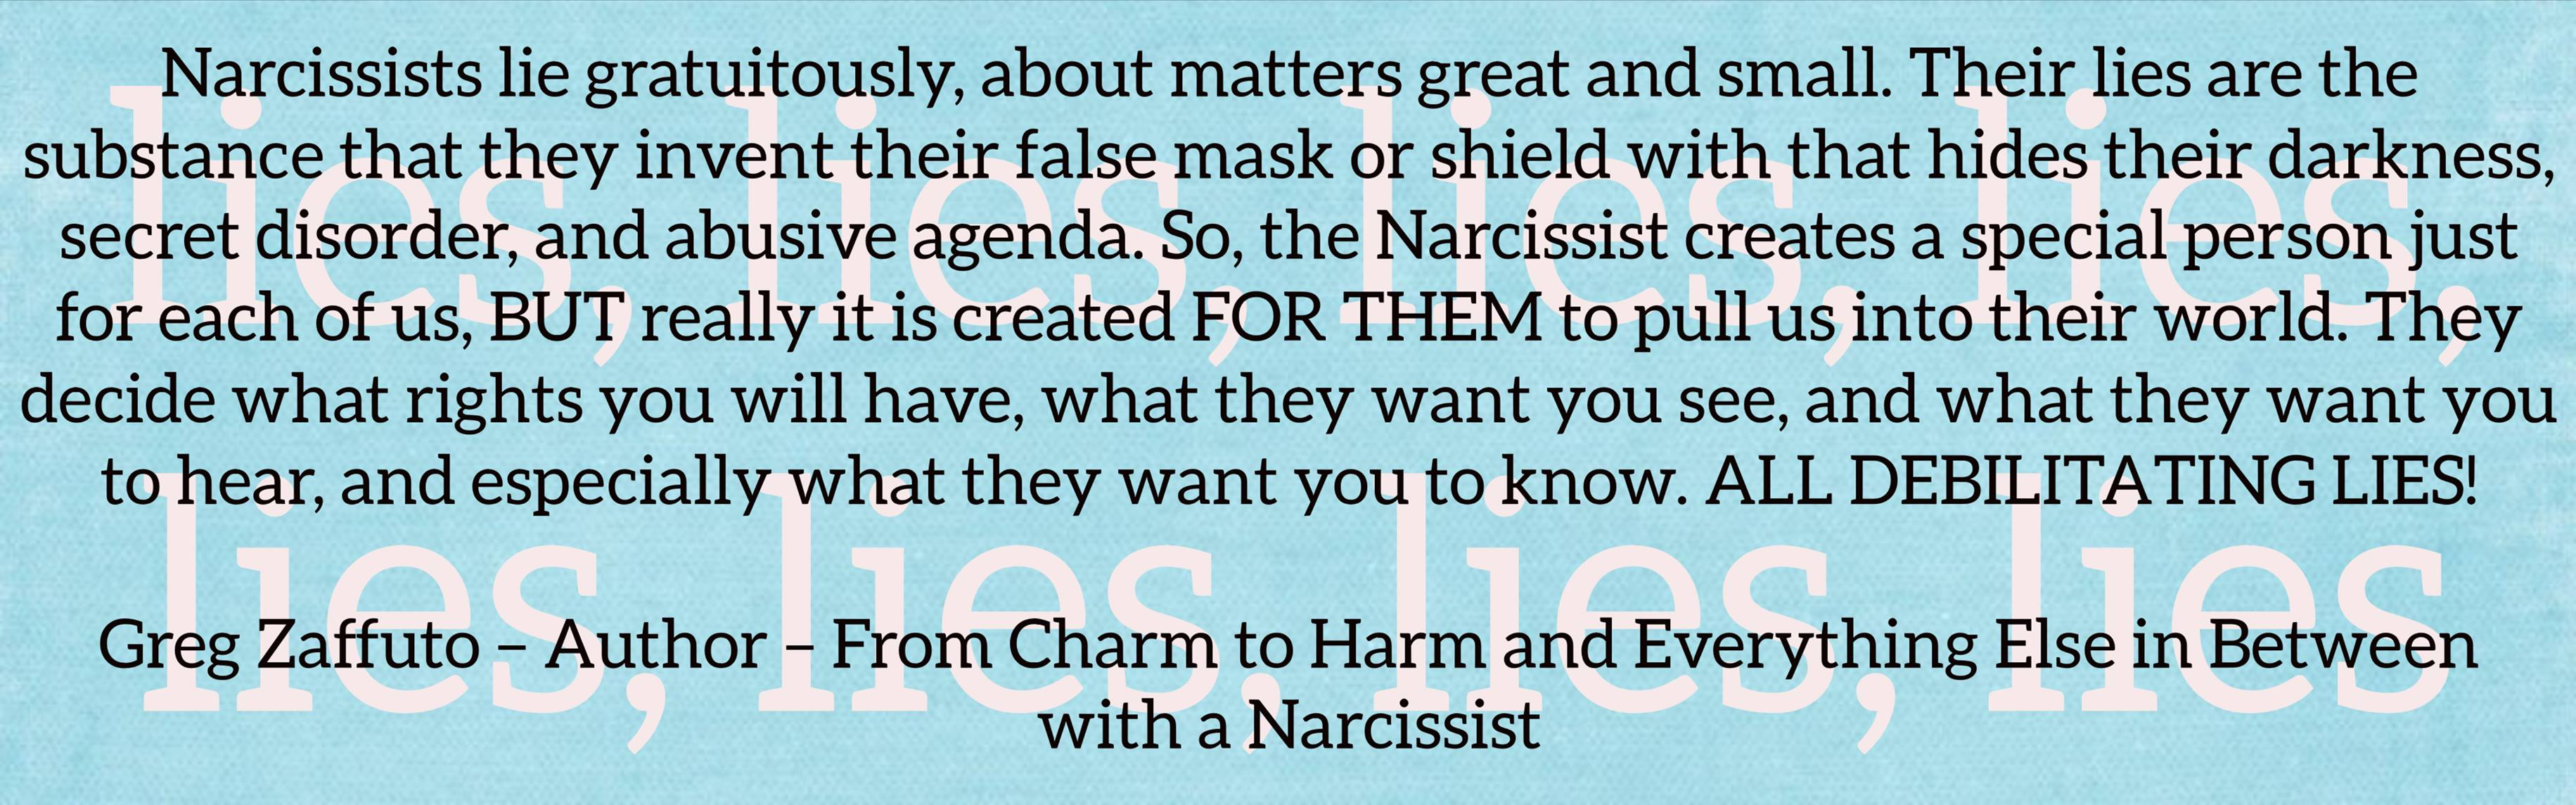 There is no reality to anything they say or do. It is all said or done for control and gain. — After Narcissistic Abuse